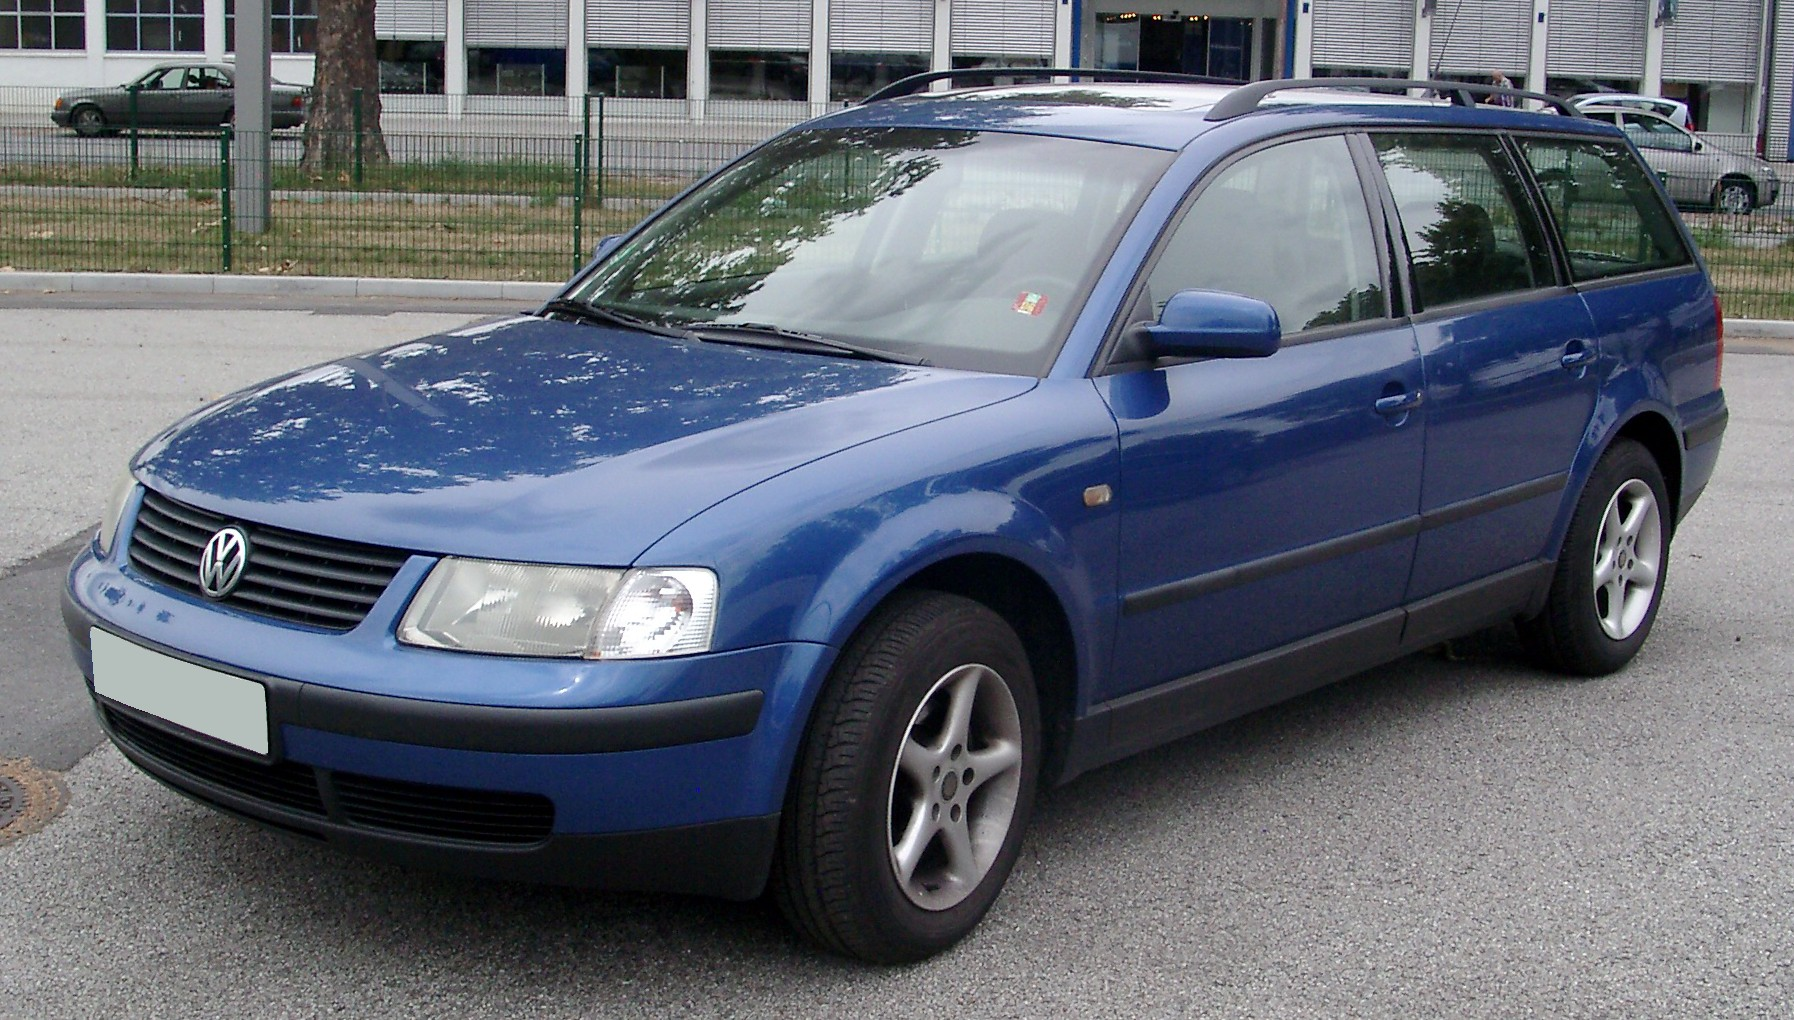 2004 volkswagen passat variant 3b5 pictures information and specs auto. Black Bedroom Furniture Sets. Home Design Ideas